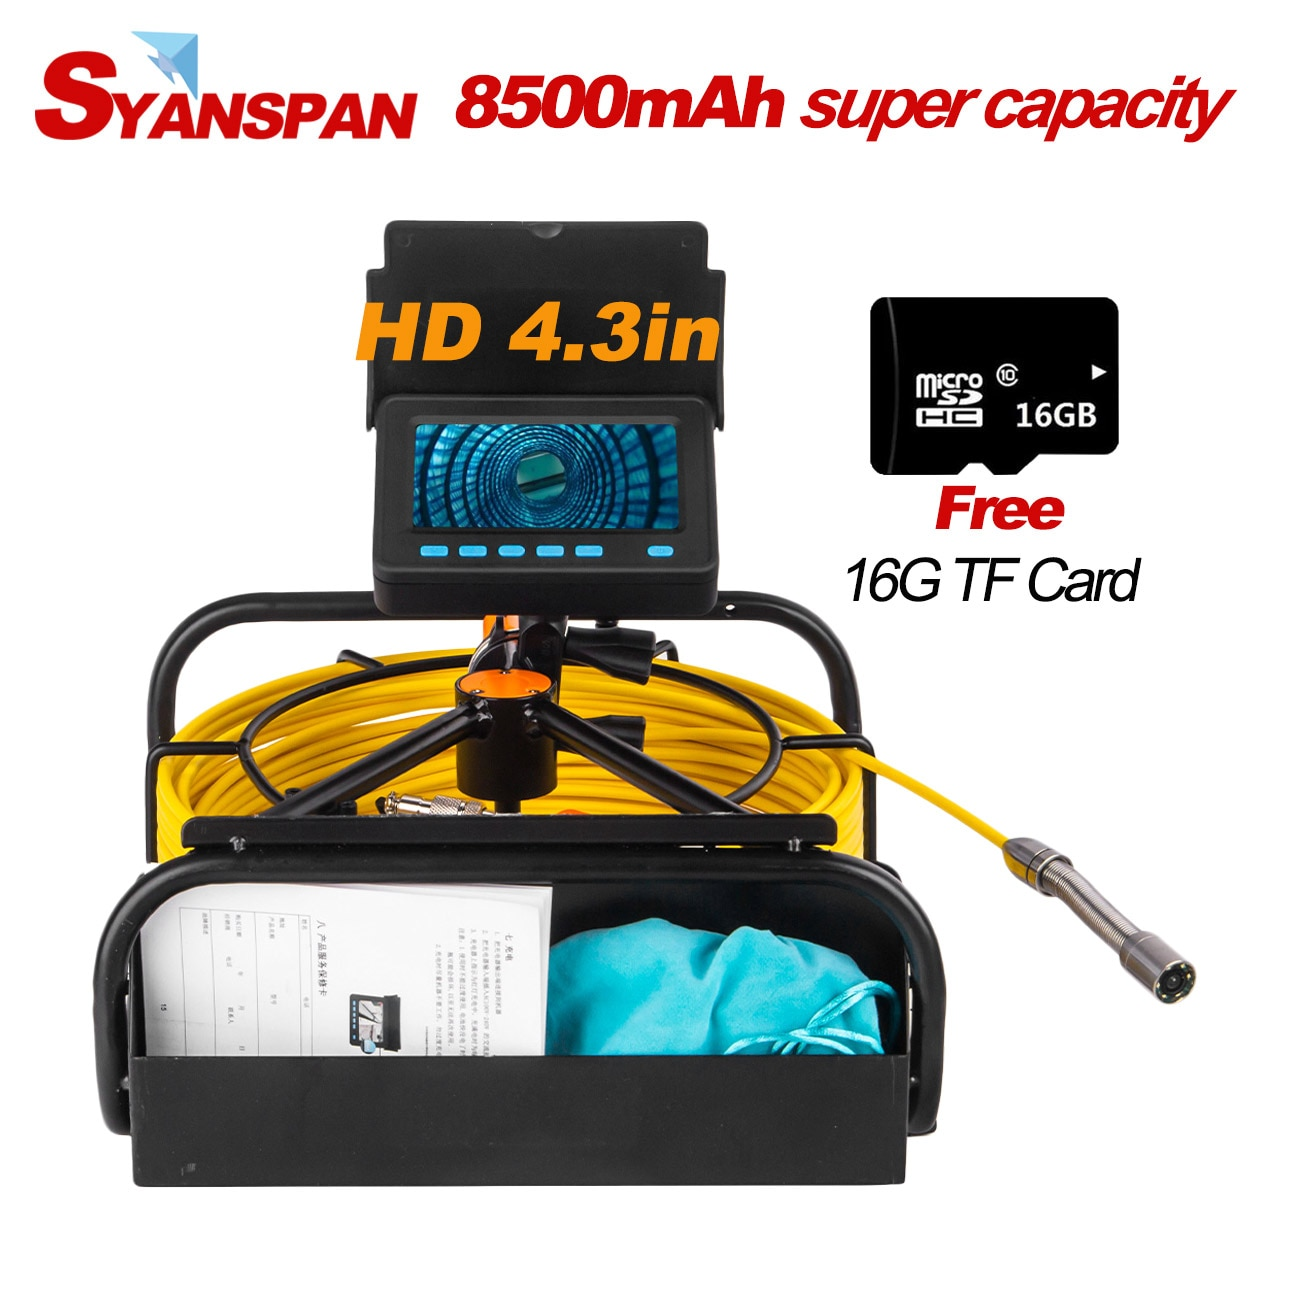 Promo Portable 8500mAh Capacity Standable 16GB TF Card DVR IP68 SYANSPAN Industrial Drain Sewer Pipe Inspection Video Camera Endoscope